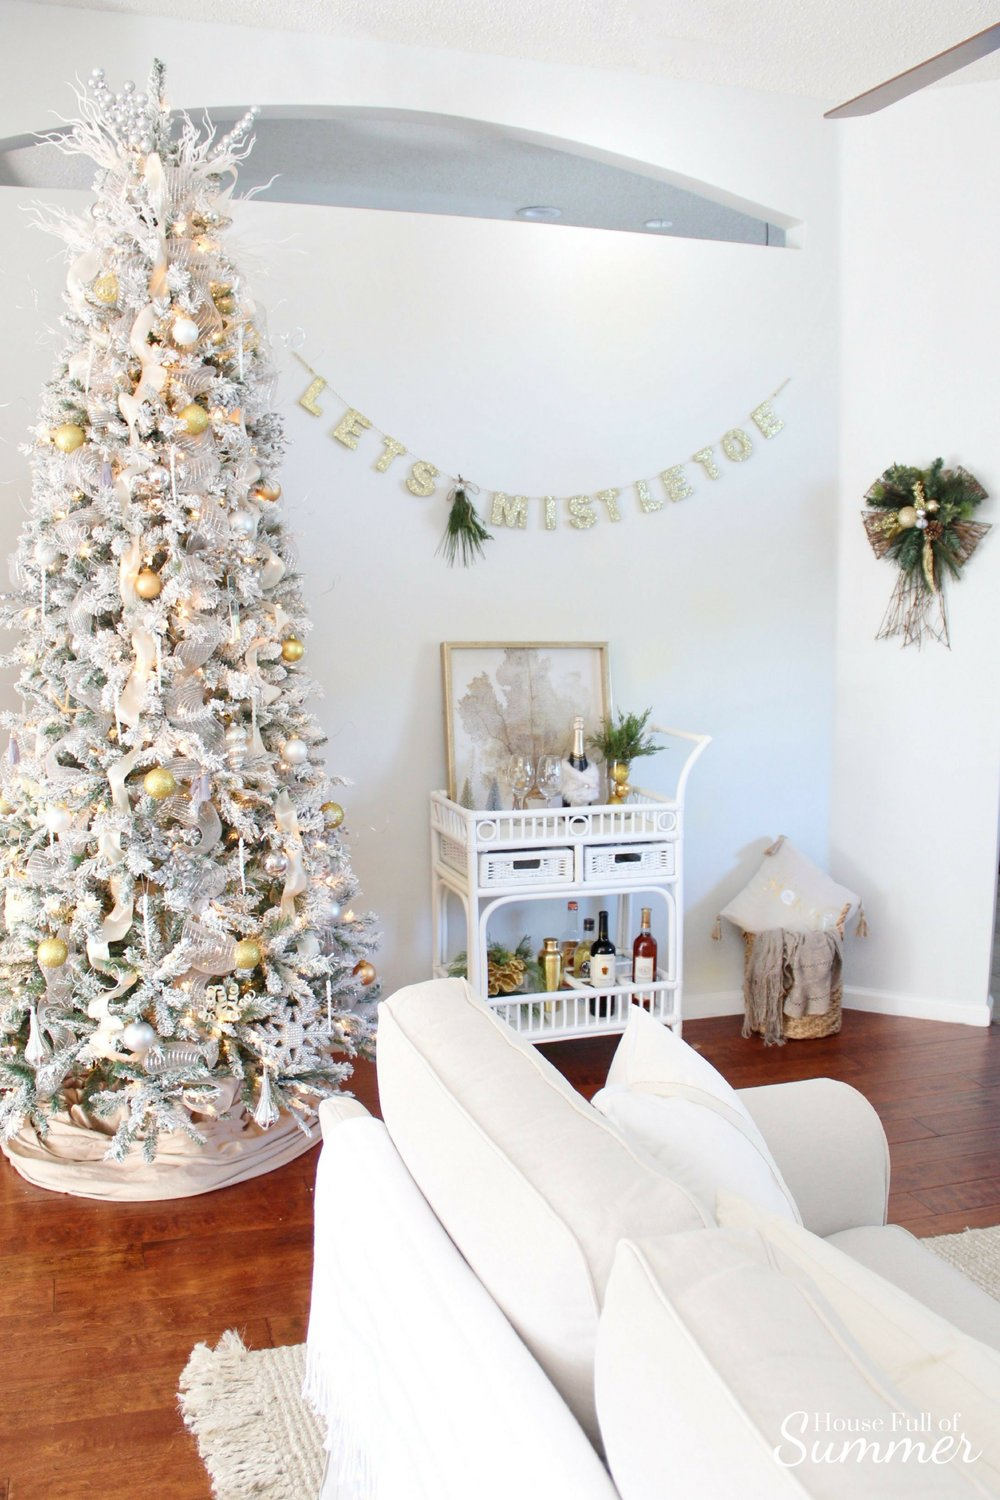 Christmas Home Tour | House Full of Summer blog hop - Cheerful Christmas Home Tourcoastal christmas neutral christmas decor, holiday home tour, florida christmas, white bar cart, gold glam christmas decor, let's mistletoe garland